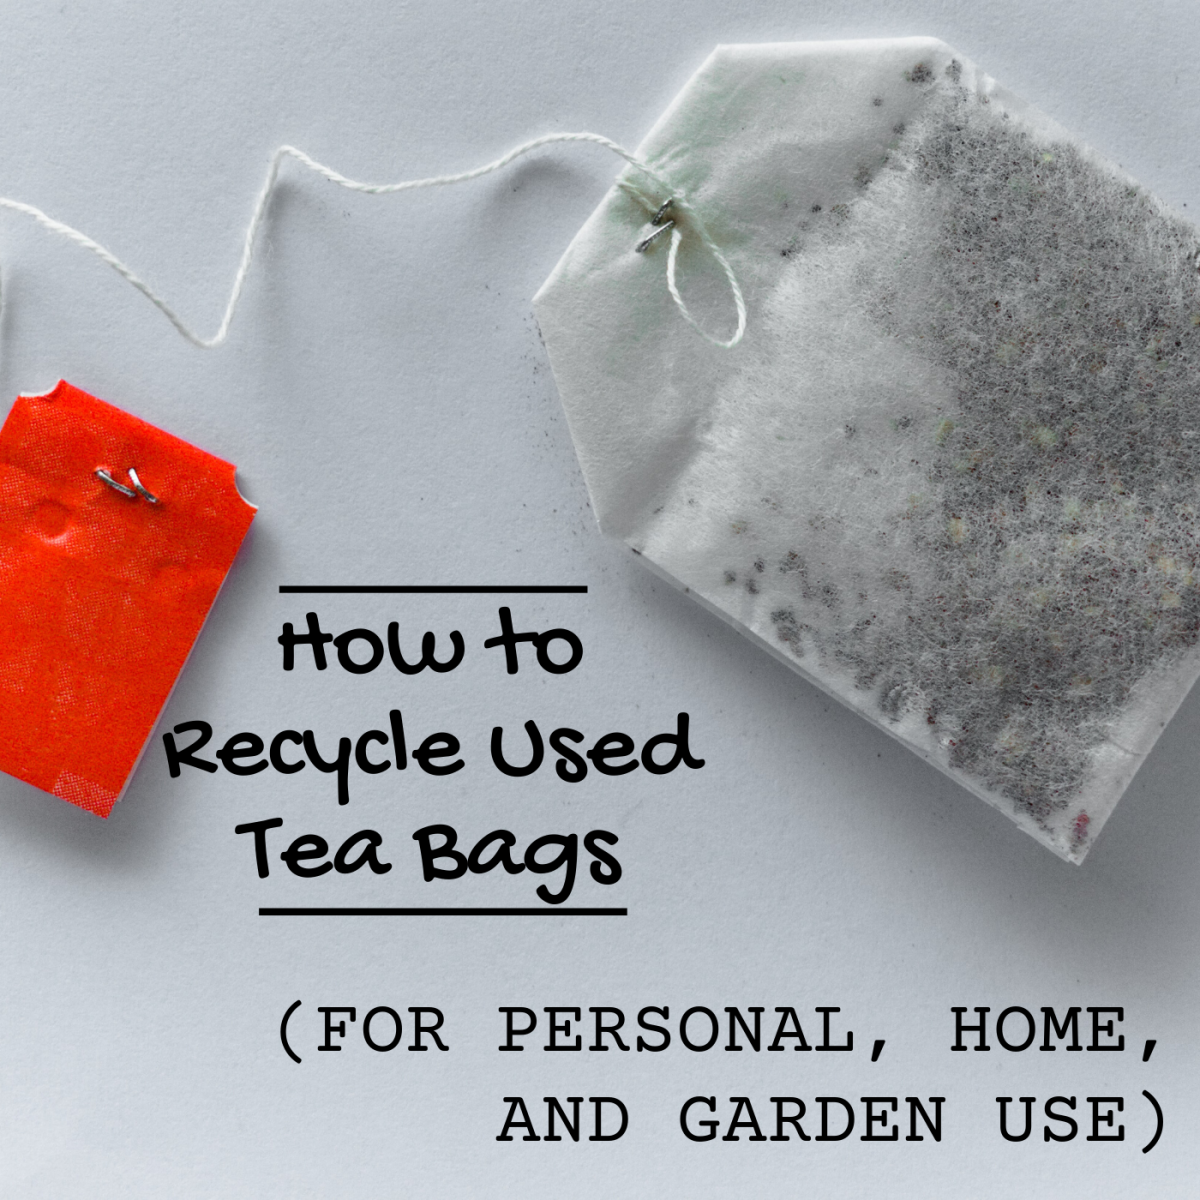 Green and Frugal Ways to Recycle Used Teabags